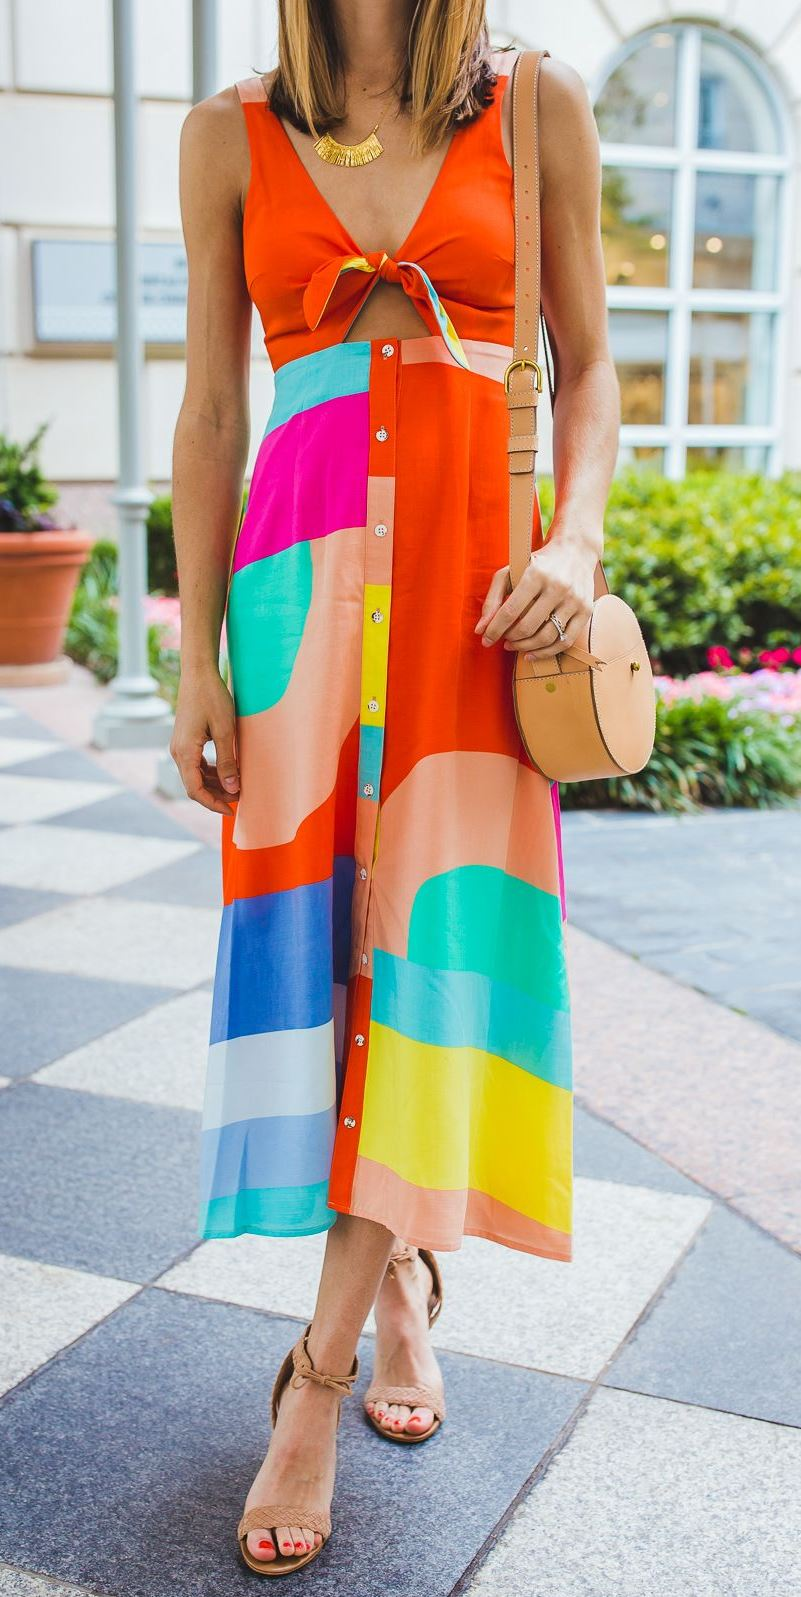 gorgeous summer outfit idea / nude round bag + colorful dress + sandals